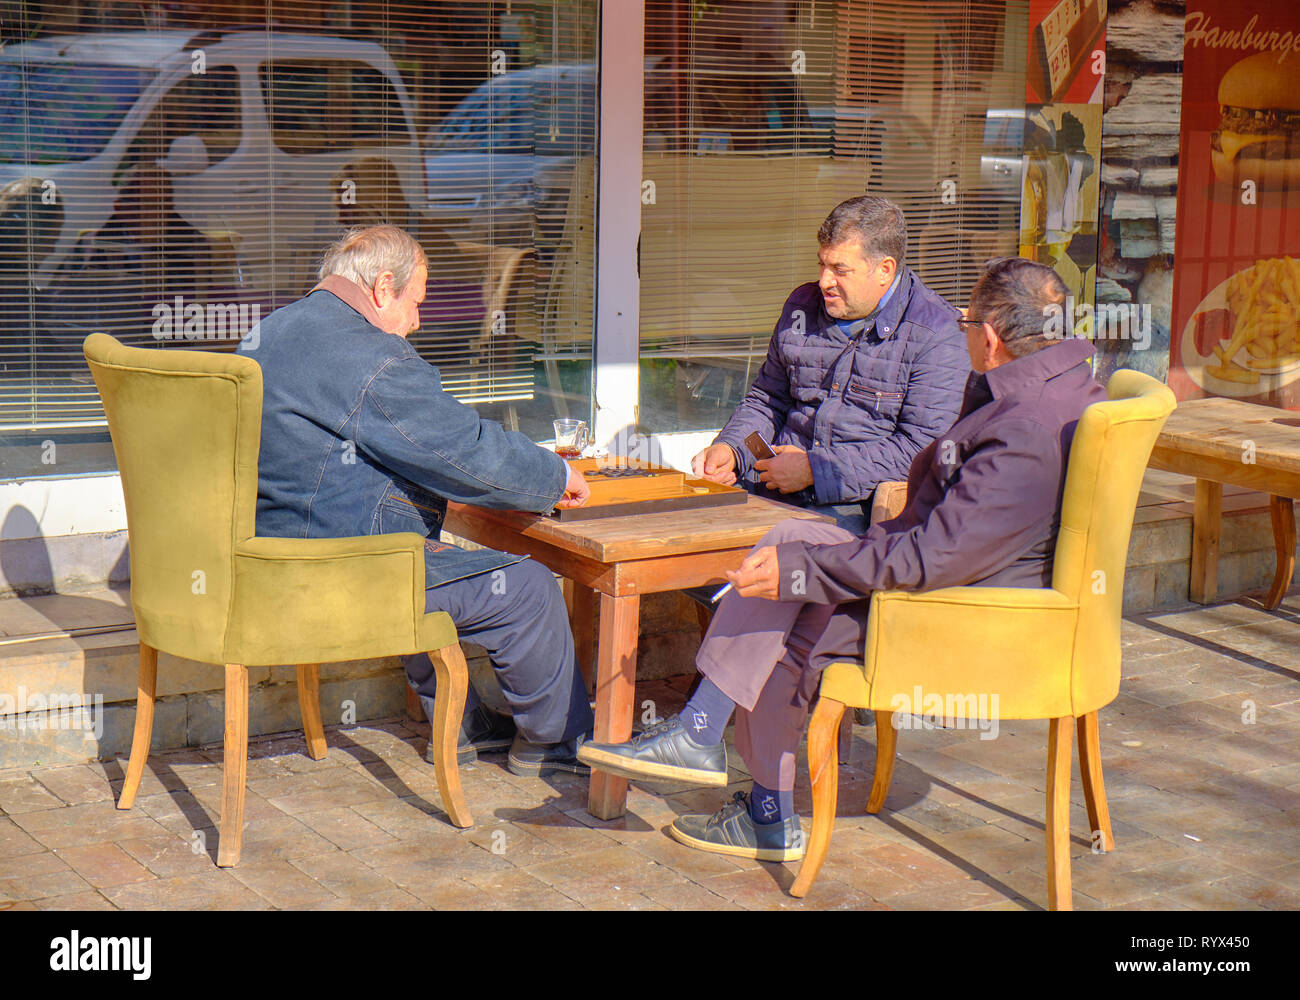 Old men playing backgammon at a cafe on old town street of Antalya, Turkey - January 3, 2019 Stock Photo